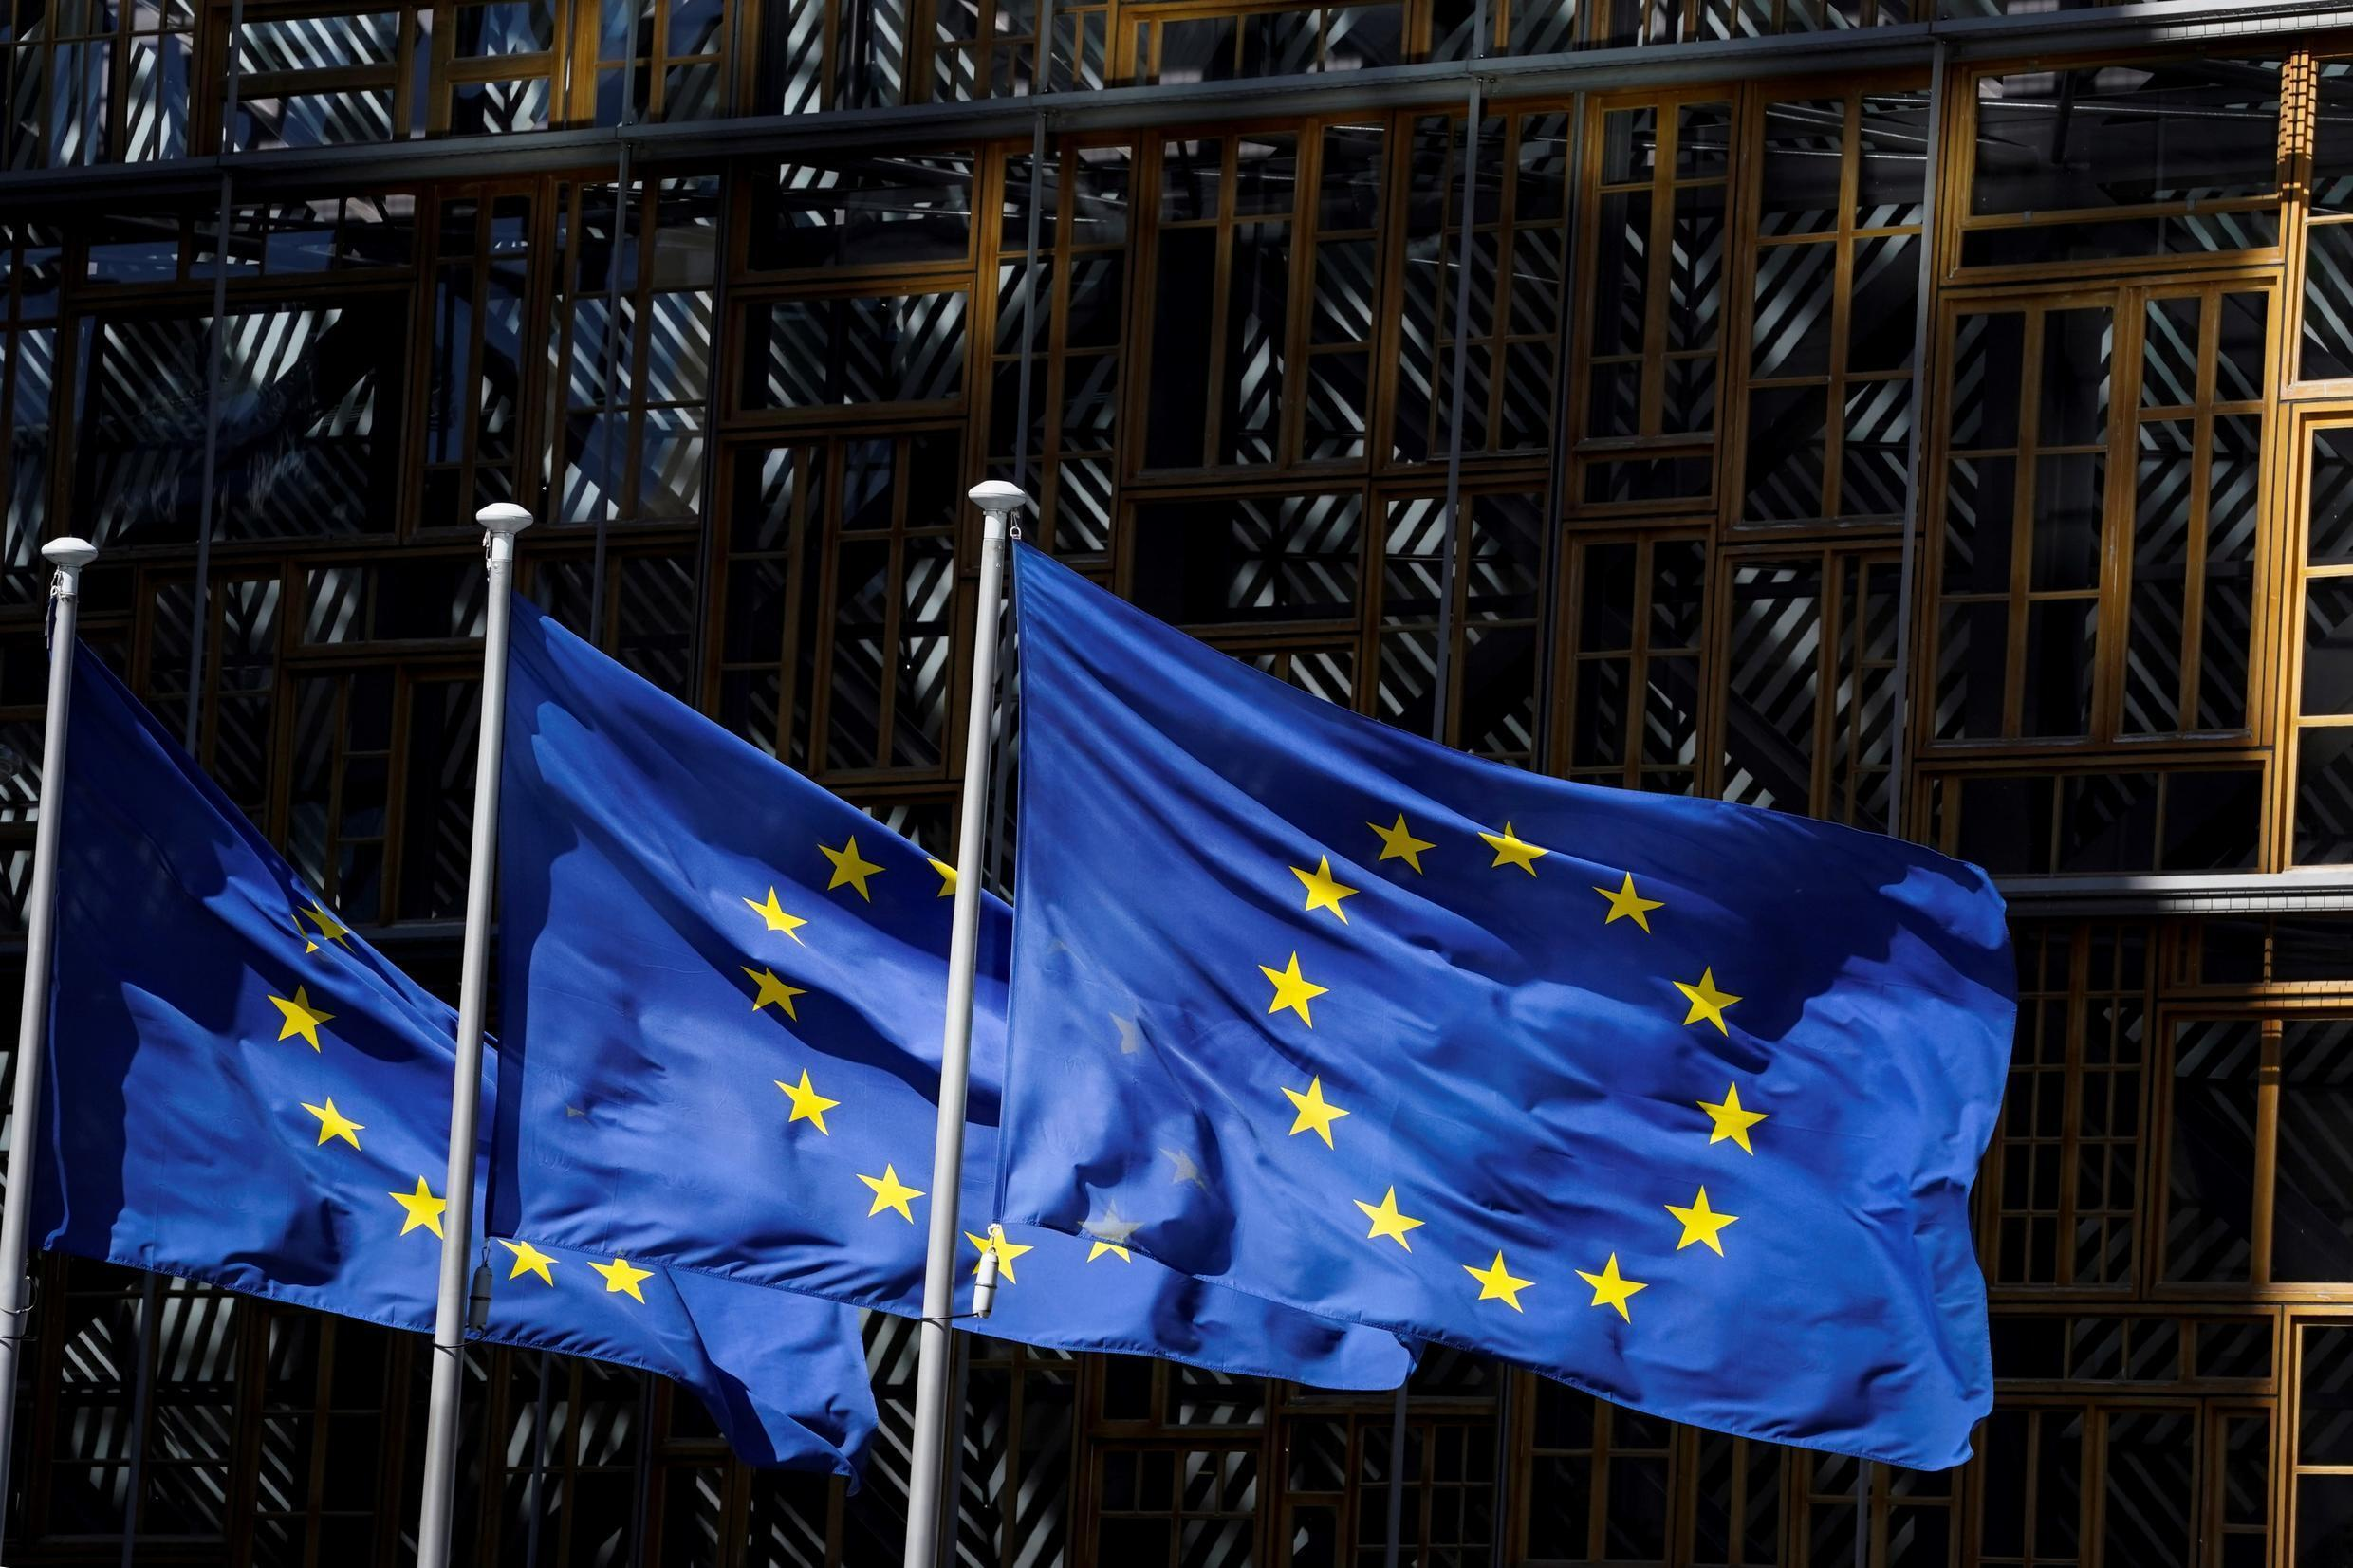 The European Union reached a budget accord after  four months of intense wrangling over spending priorities